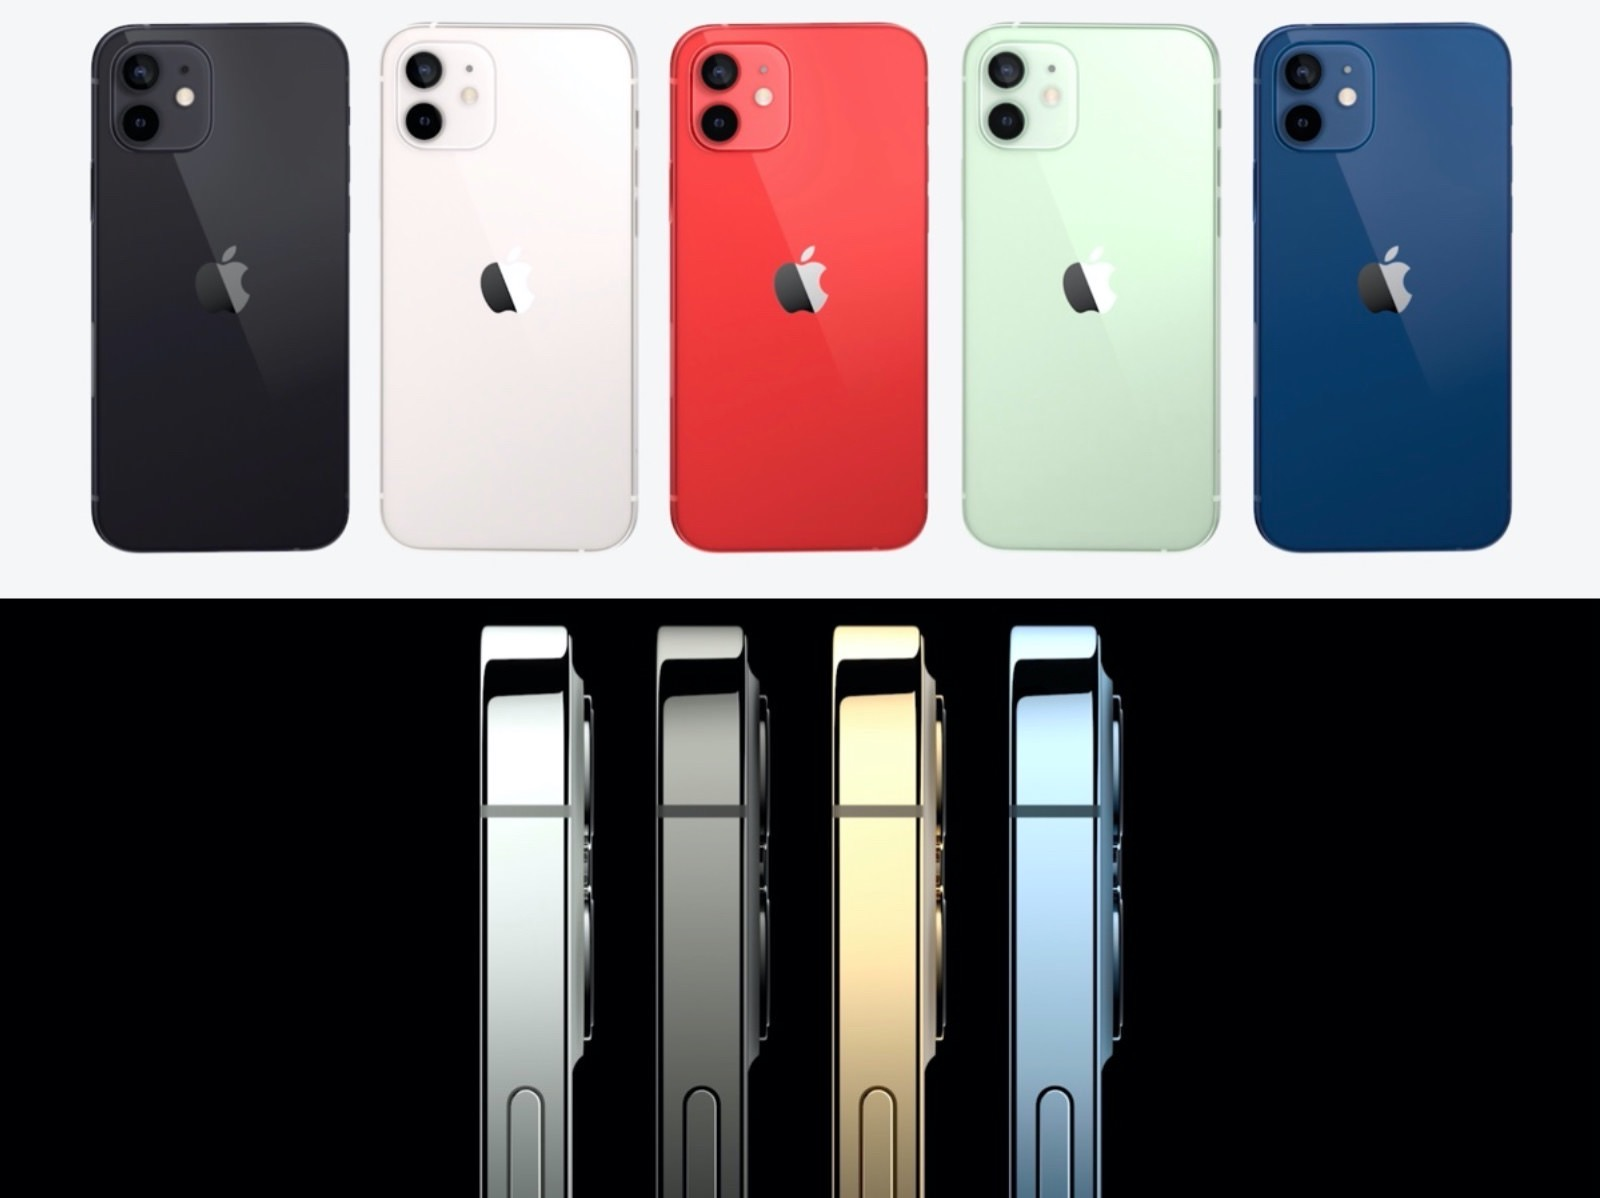 Iphone 12 series design